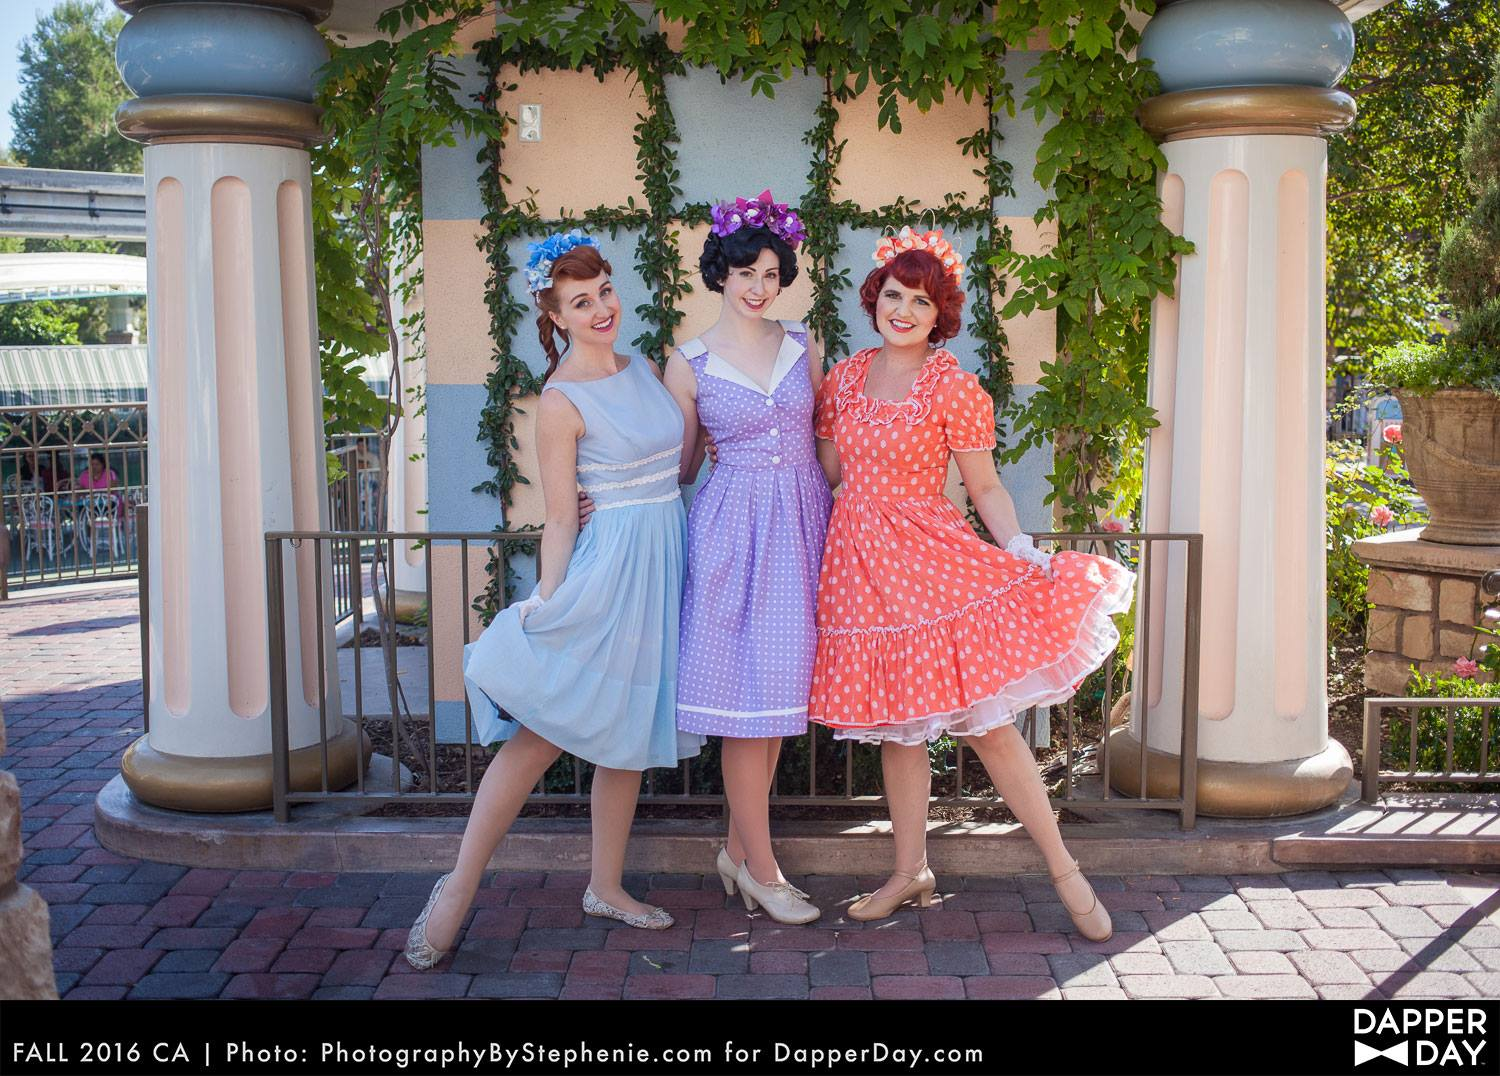 dapper days christmas cheer disneyland in fall - What Day Does Christmas Fall On